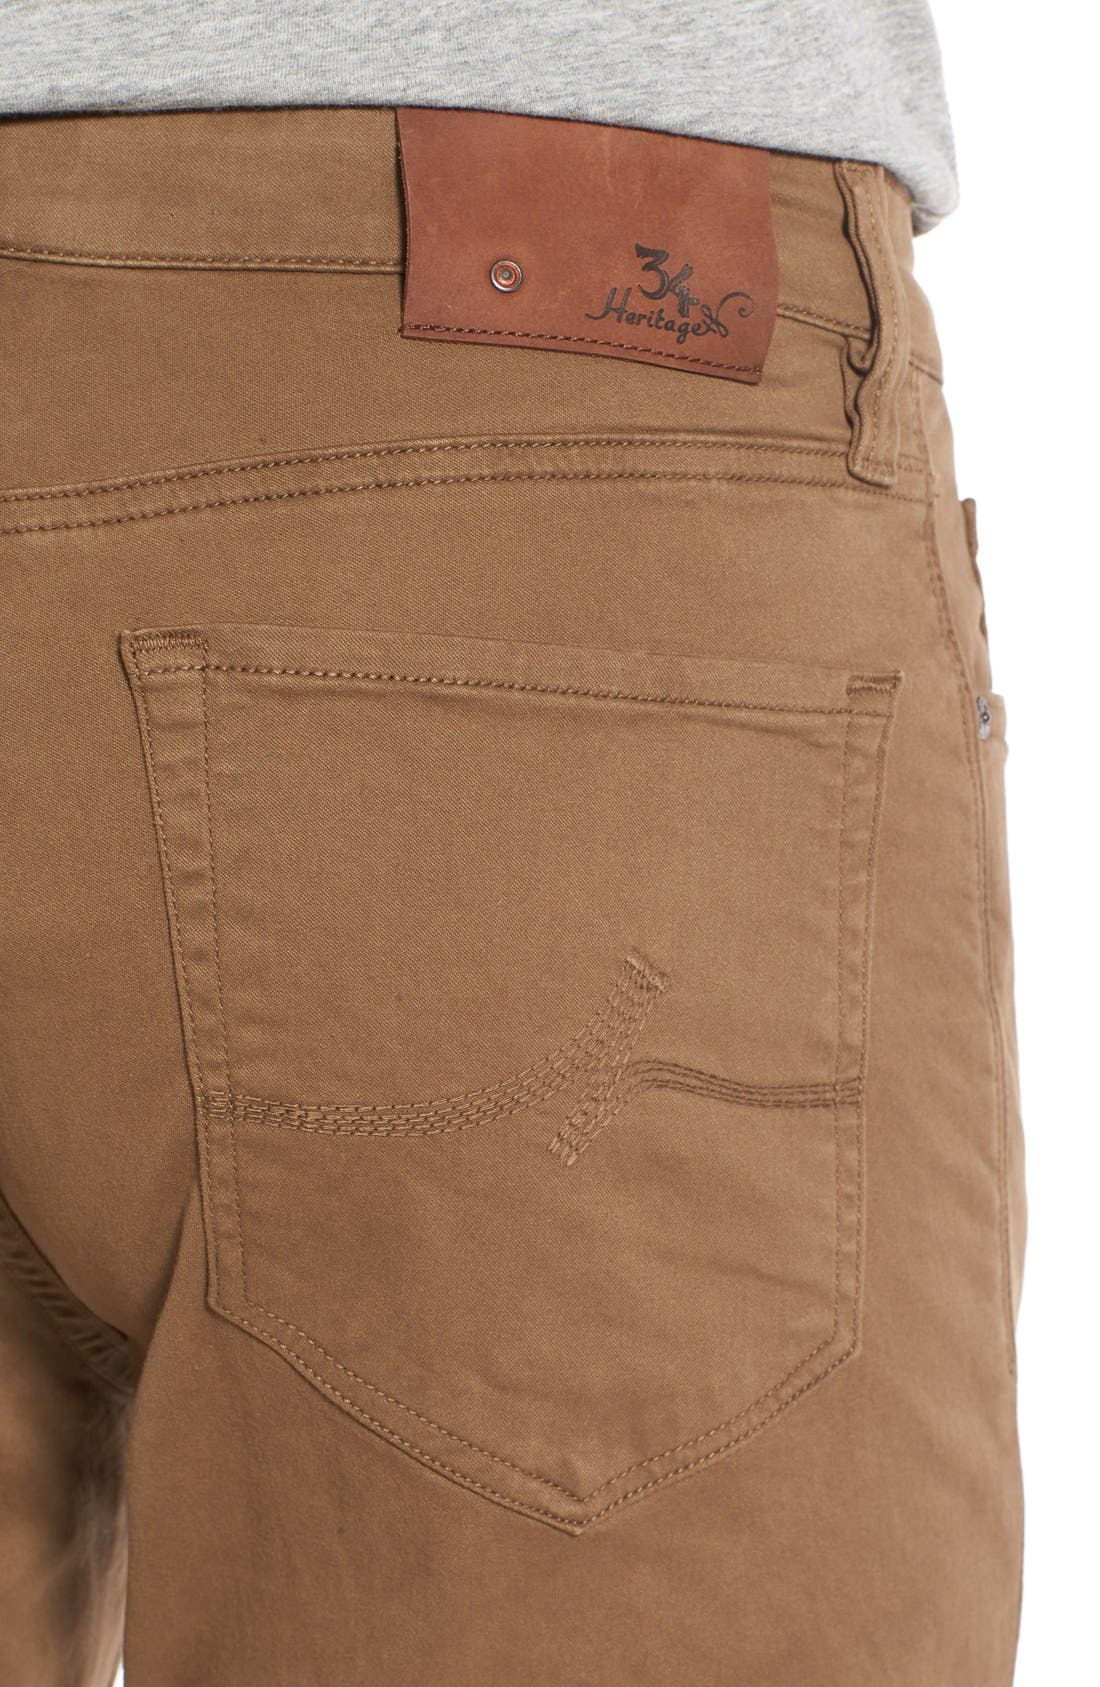 'Charisma' Relaxed Fit Jeans,                             Alternate thumbnail 5, color,